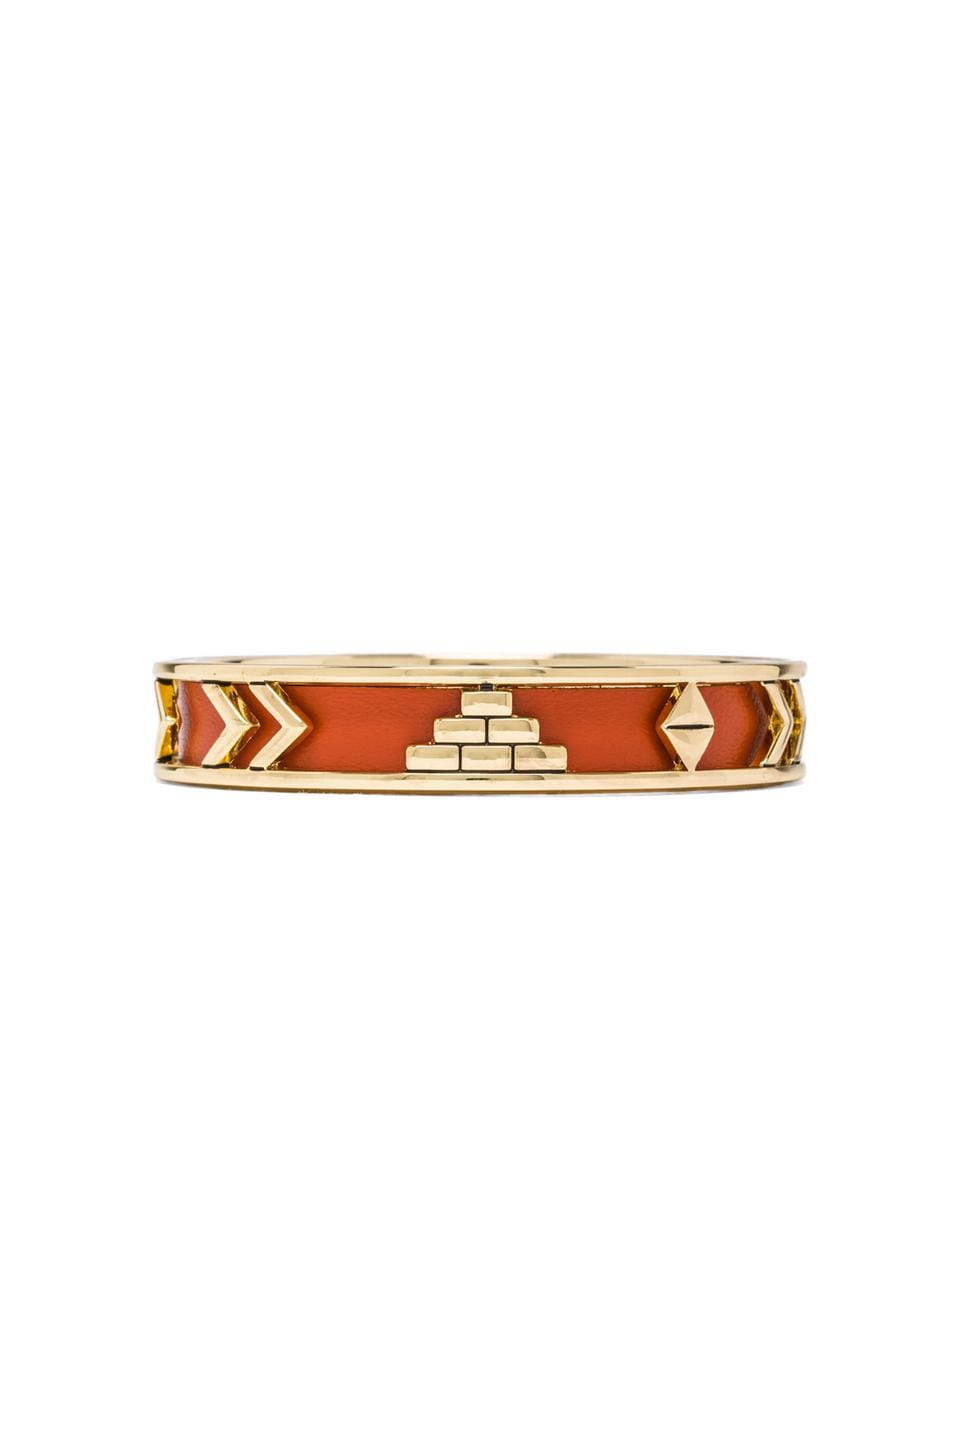 House of Harlow 1960 House of Harlow Aztec Bangle in Coral